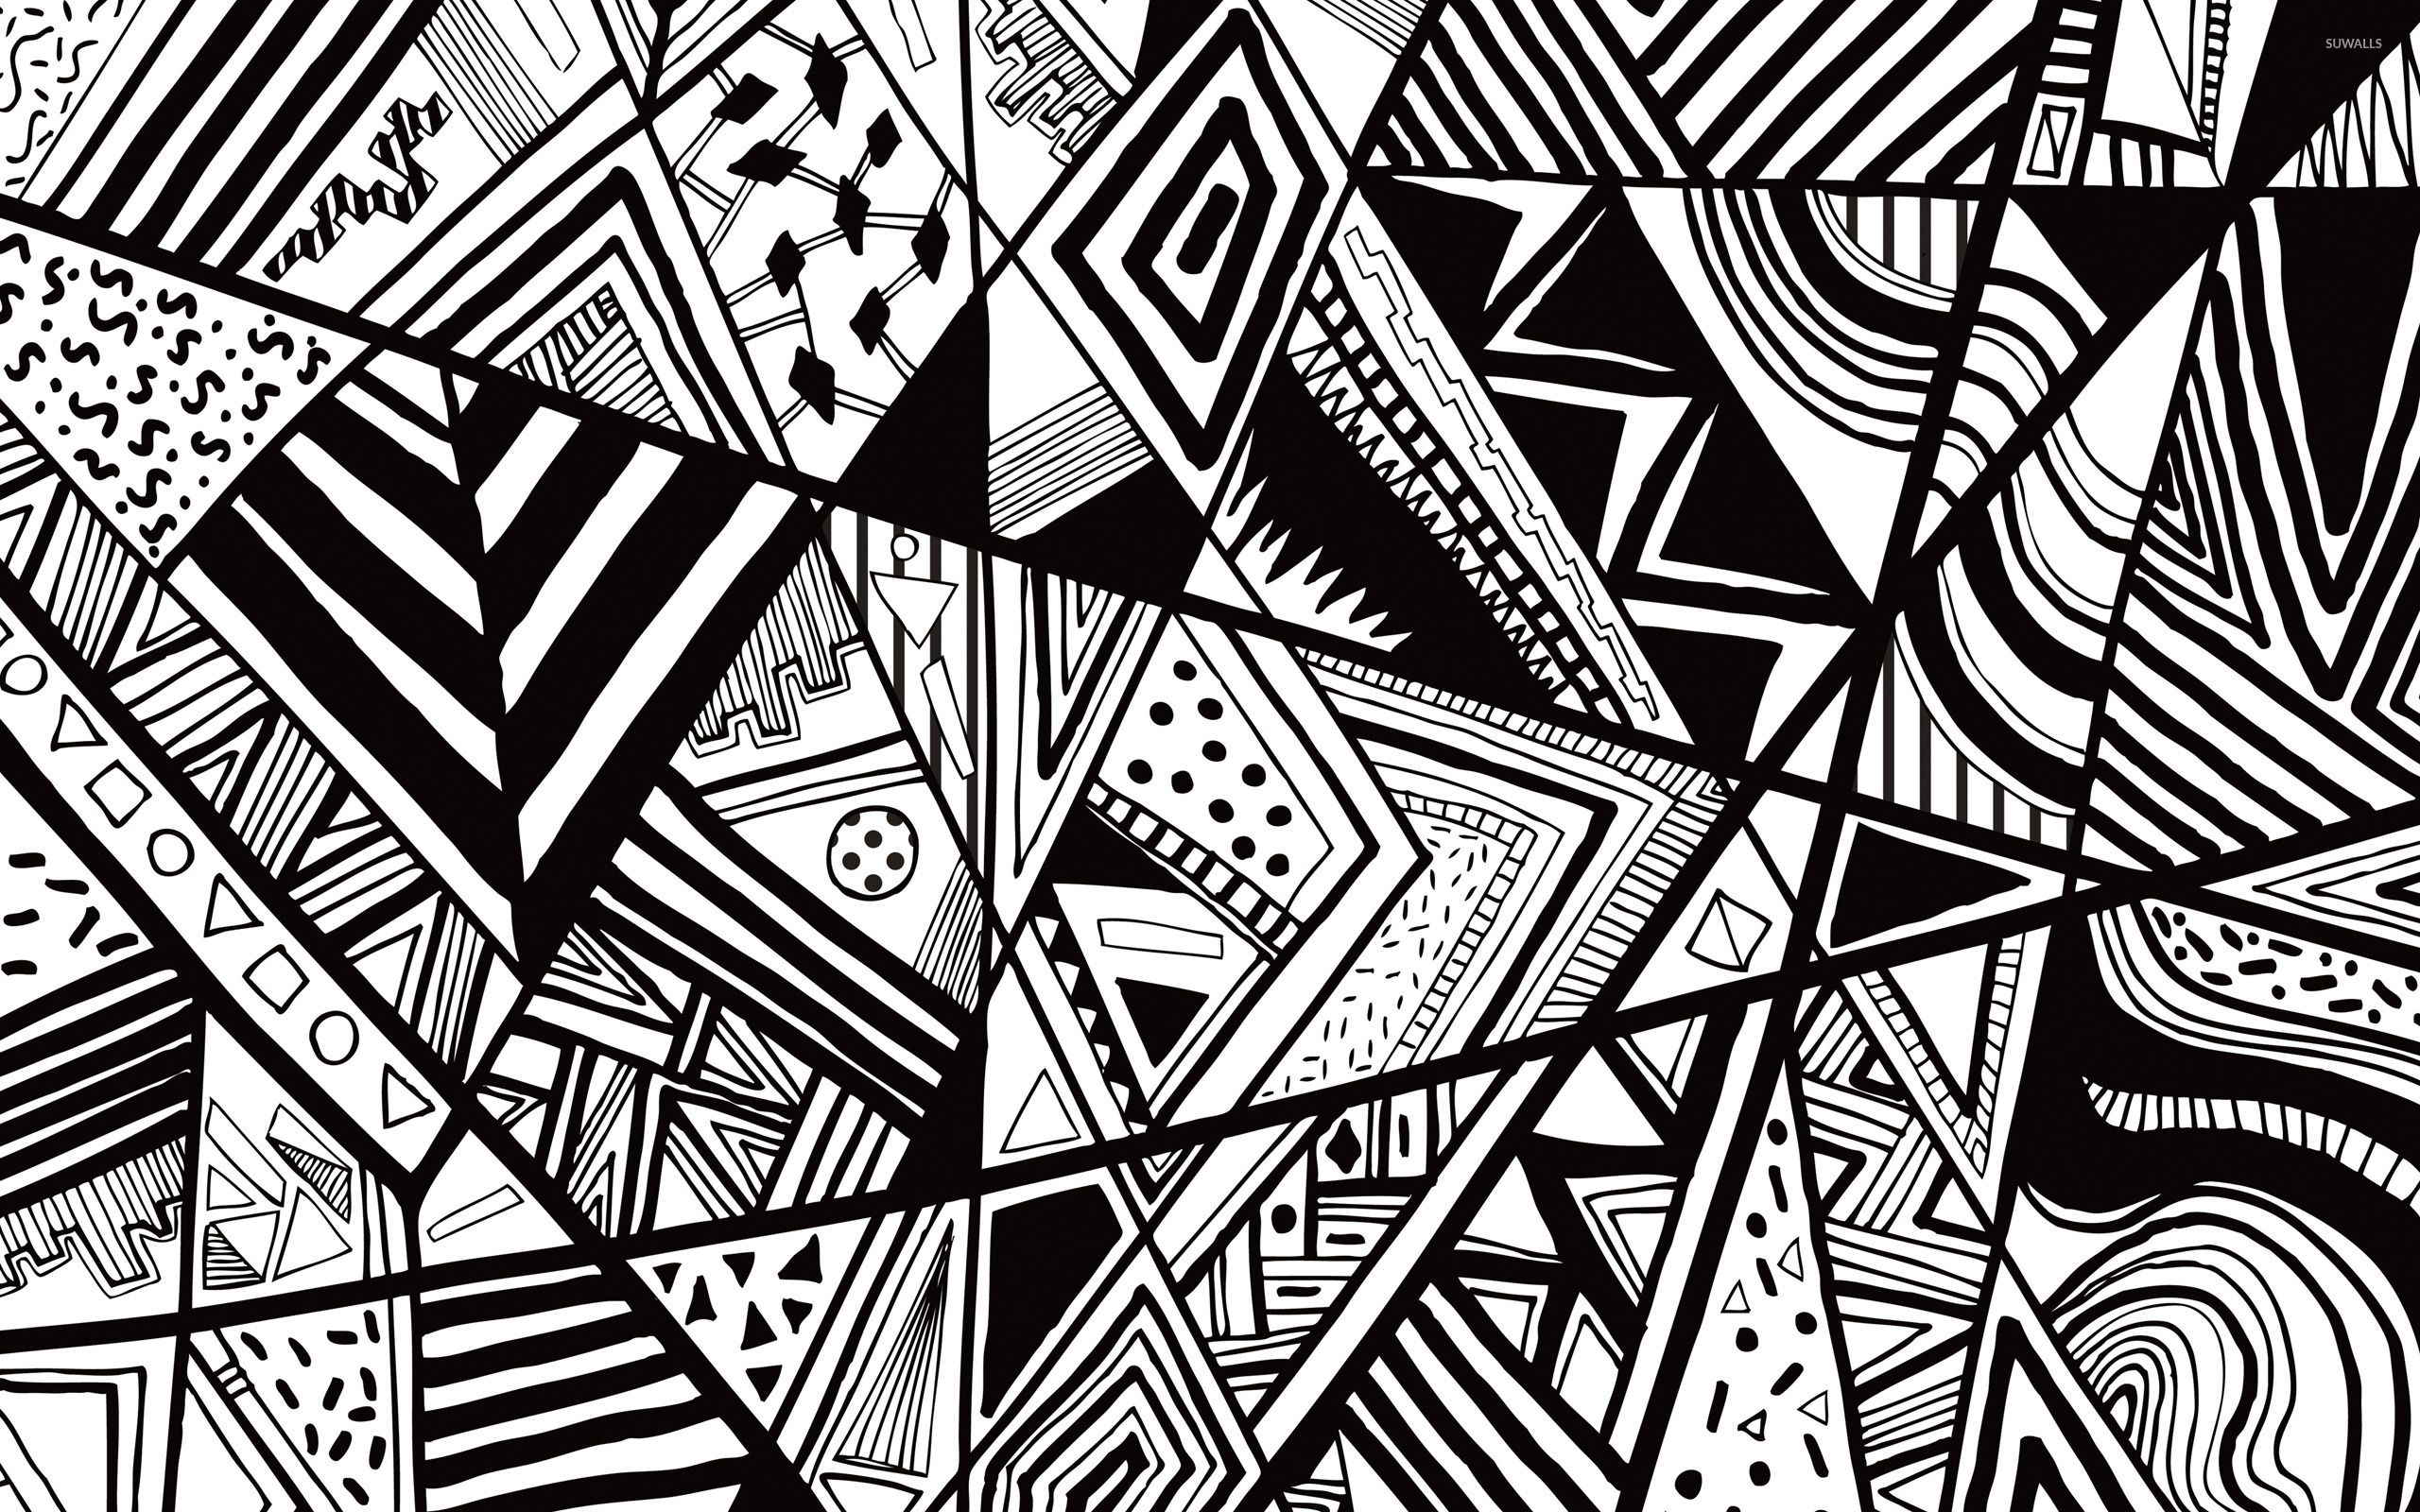 Black And White Vector Art Wallpapers Top Free Black And